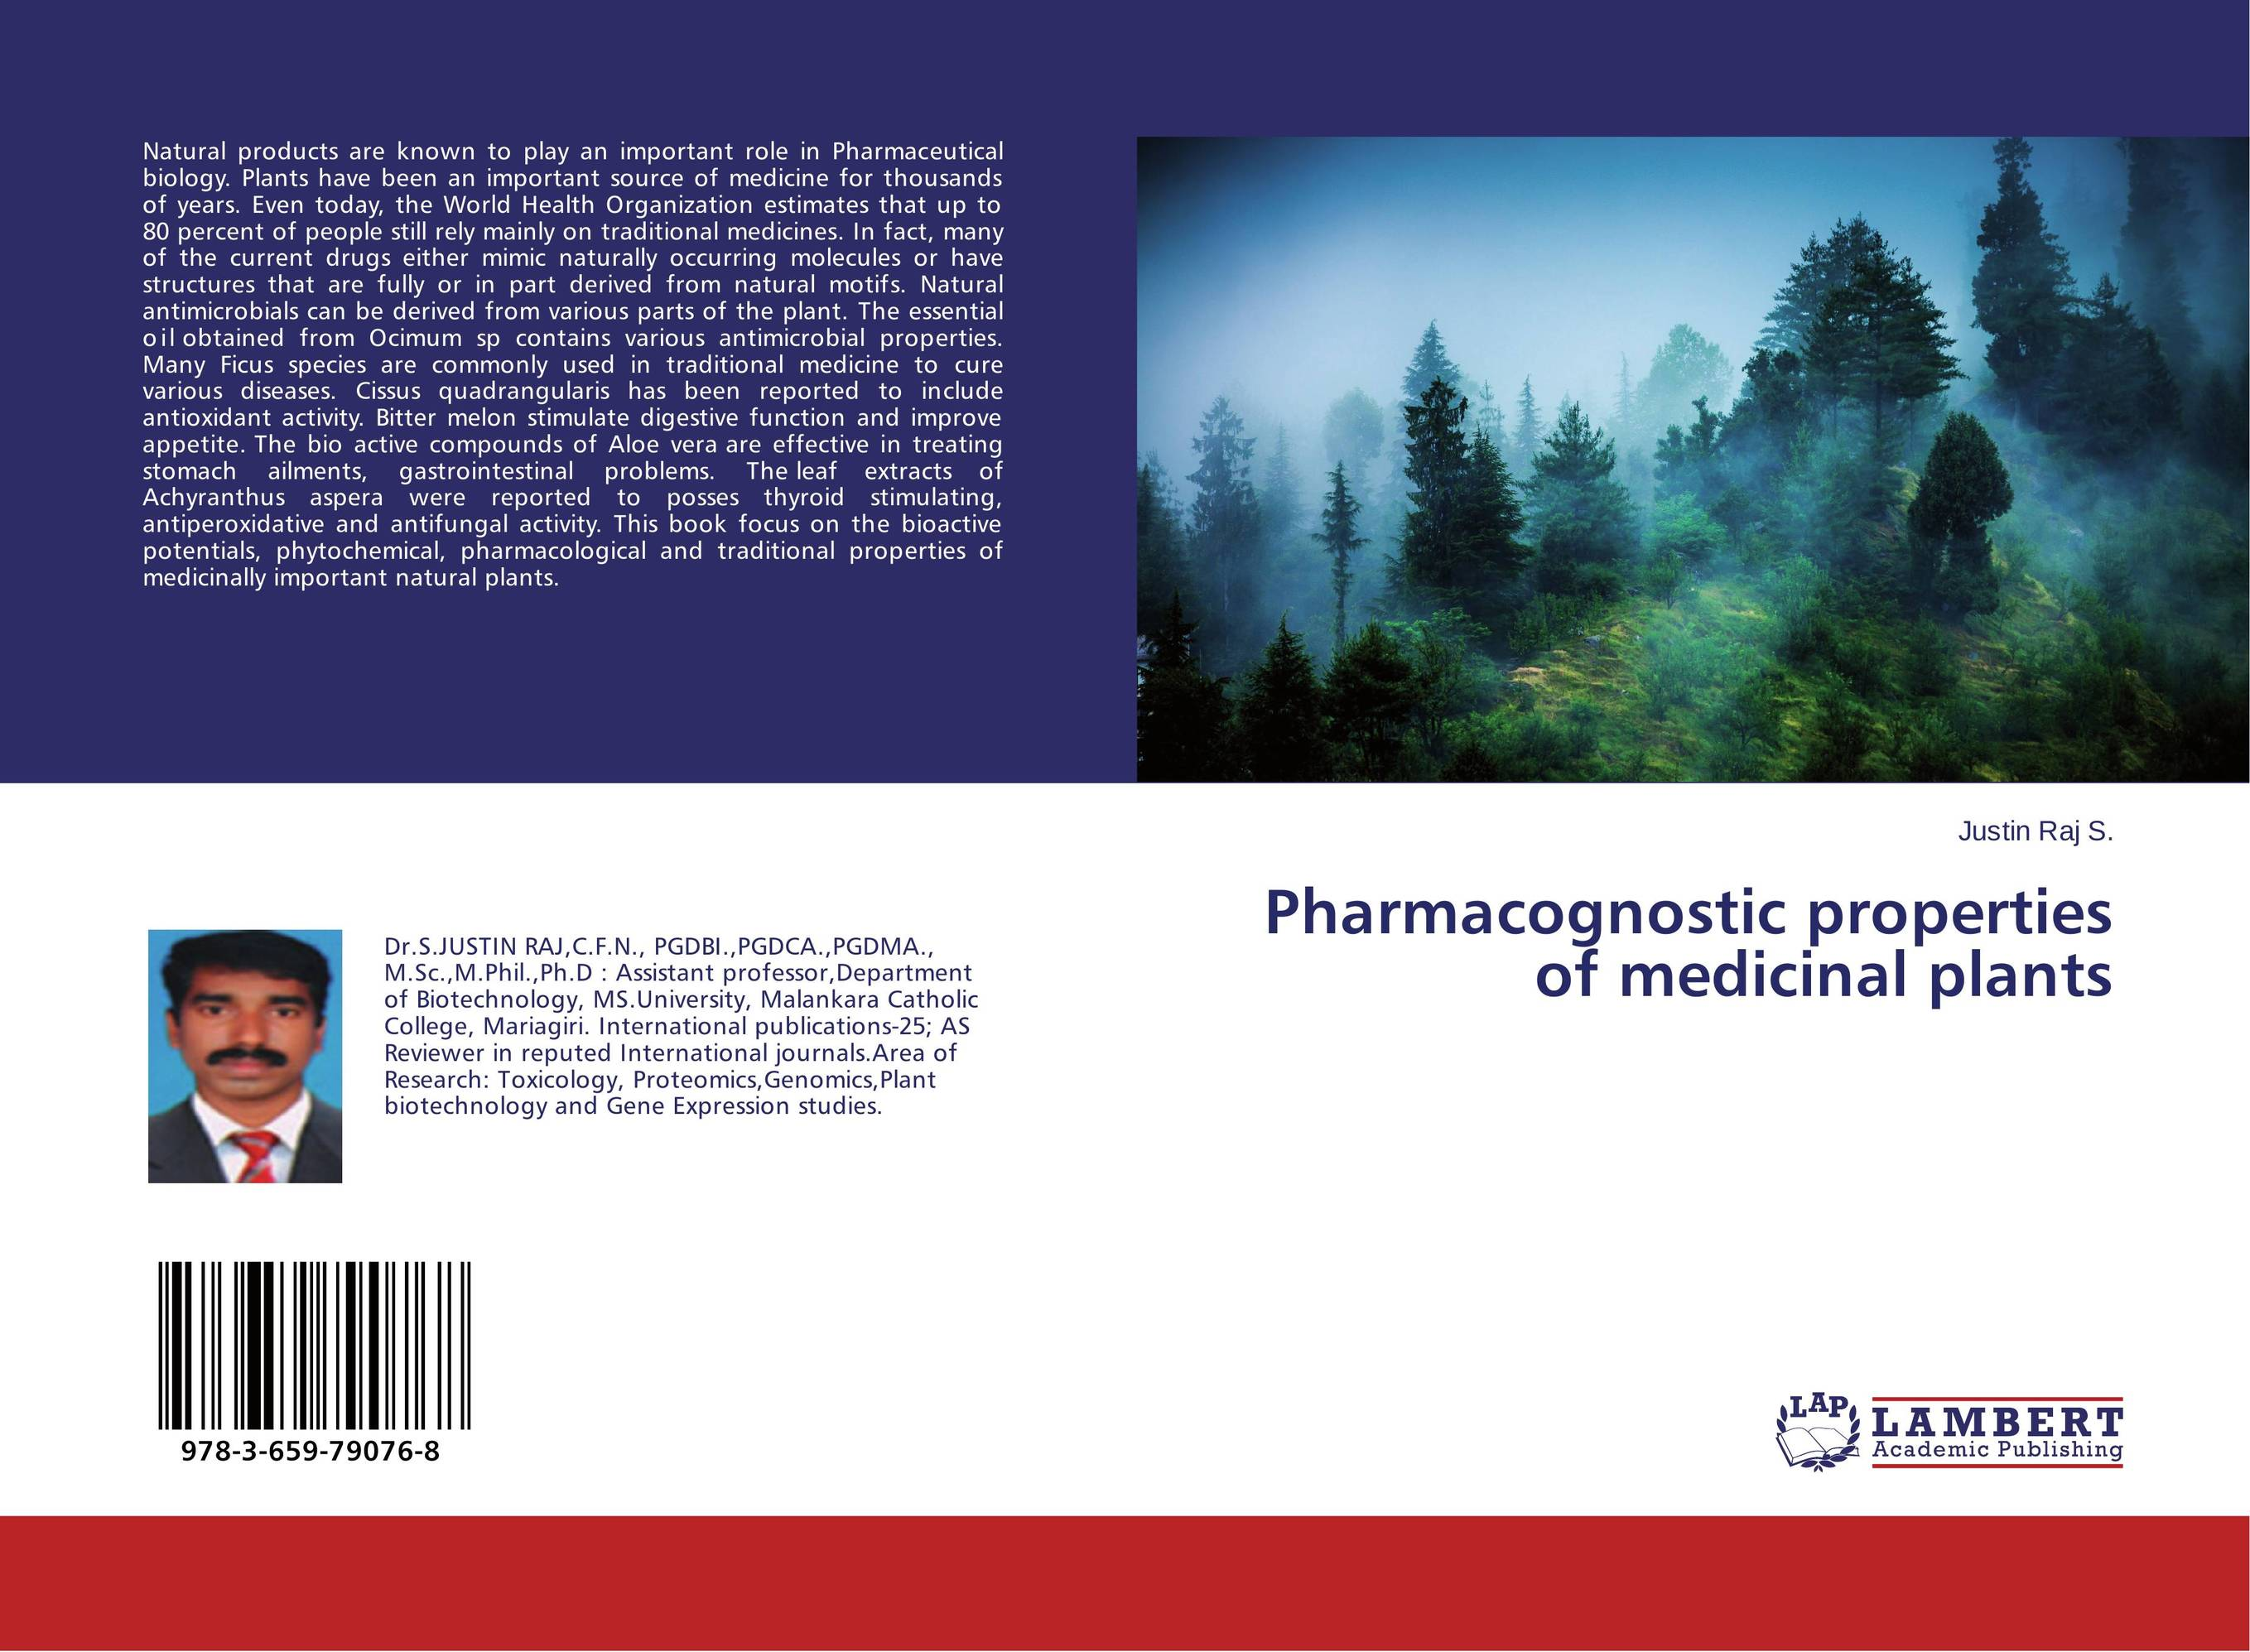 Pharmacognostic properties of medicinal plants pure nature bitter melon extract bitter melon p e powder charantin to the world